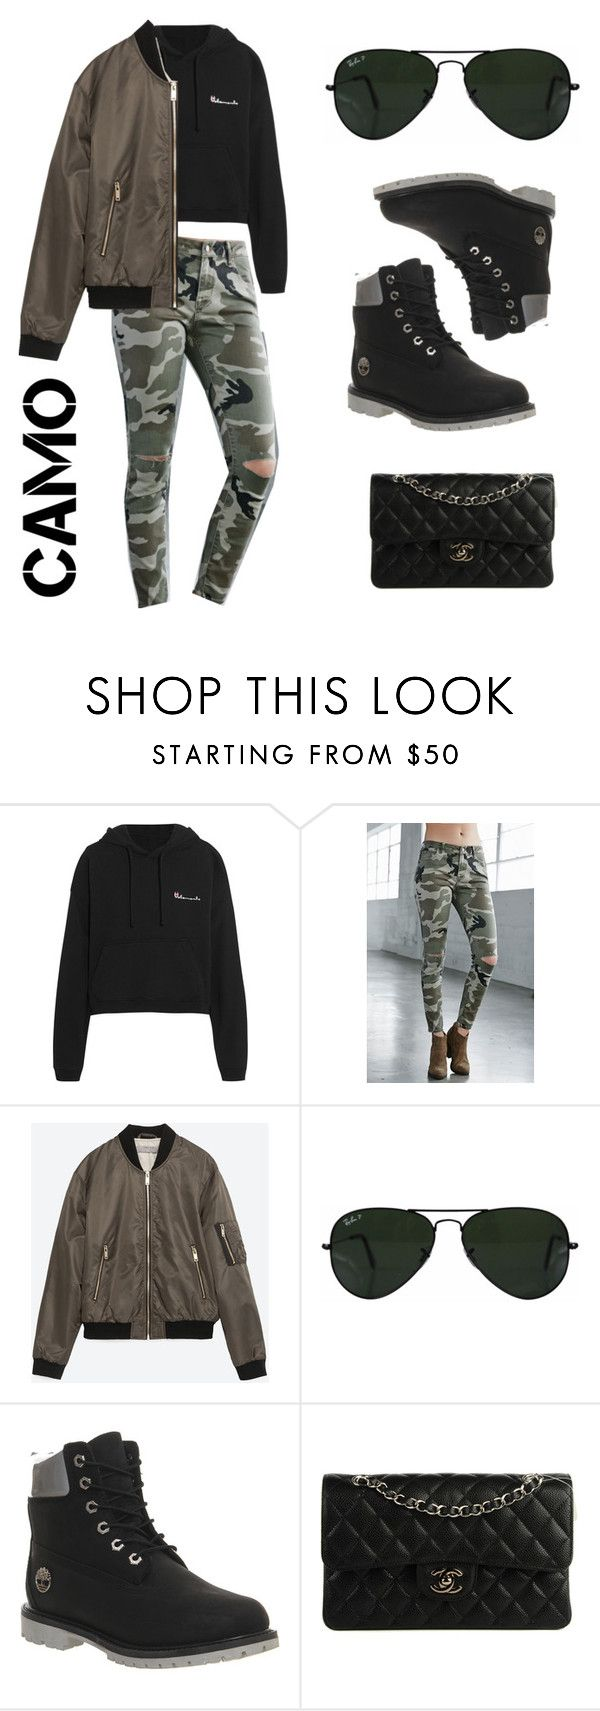 """Black with a touch of camo"" by zunnetch ❤ liked on Polyvore featuring Vetements, Bullhead Denim Co., Zara, Ray-Ban, Timberland, Chanel and camostyle"